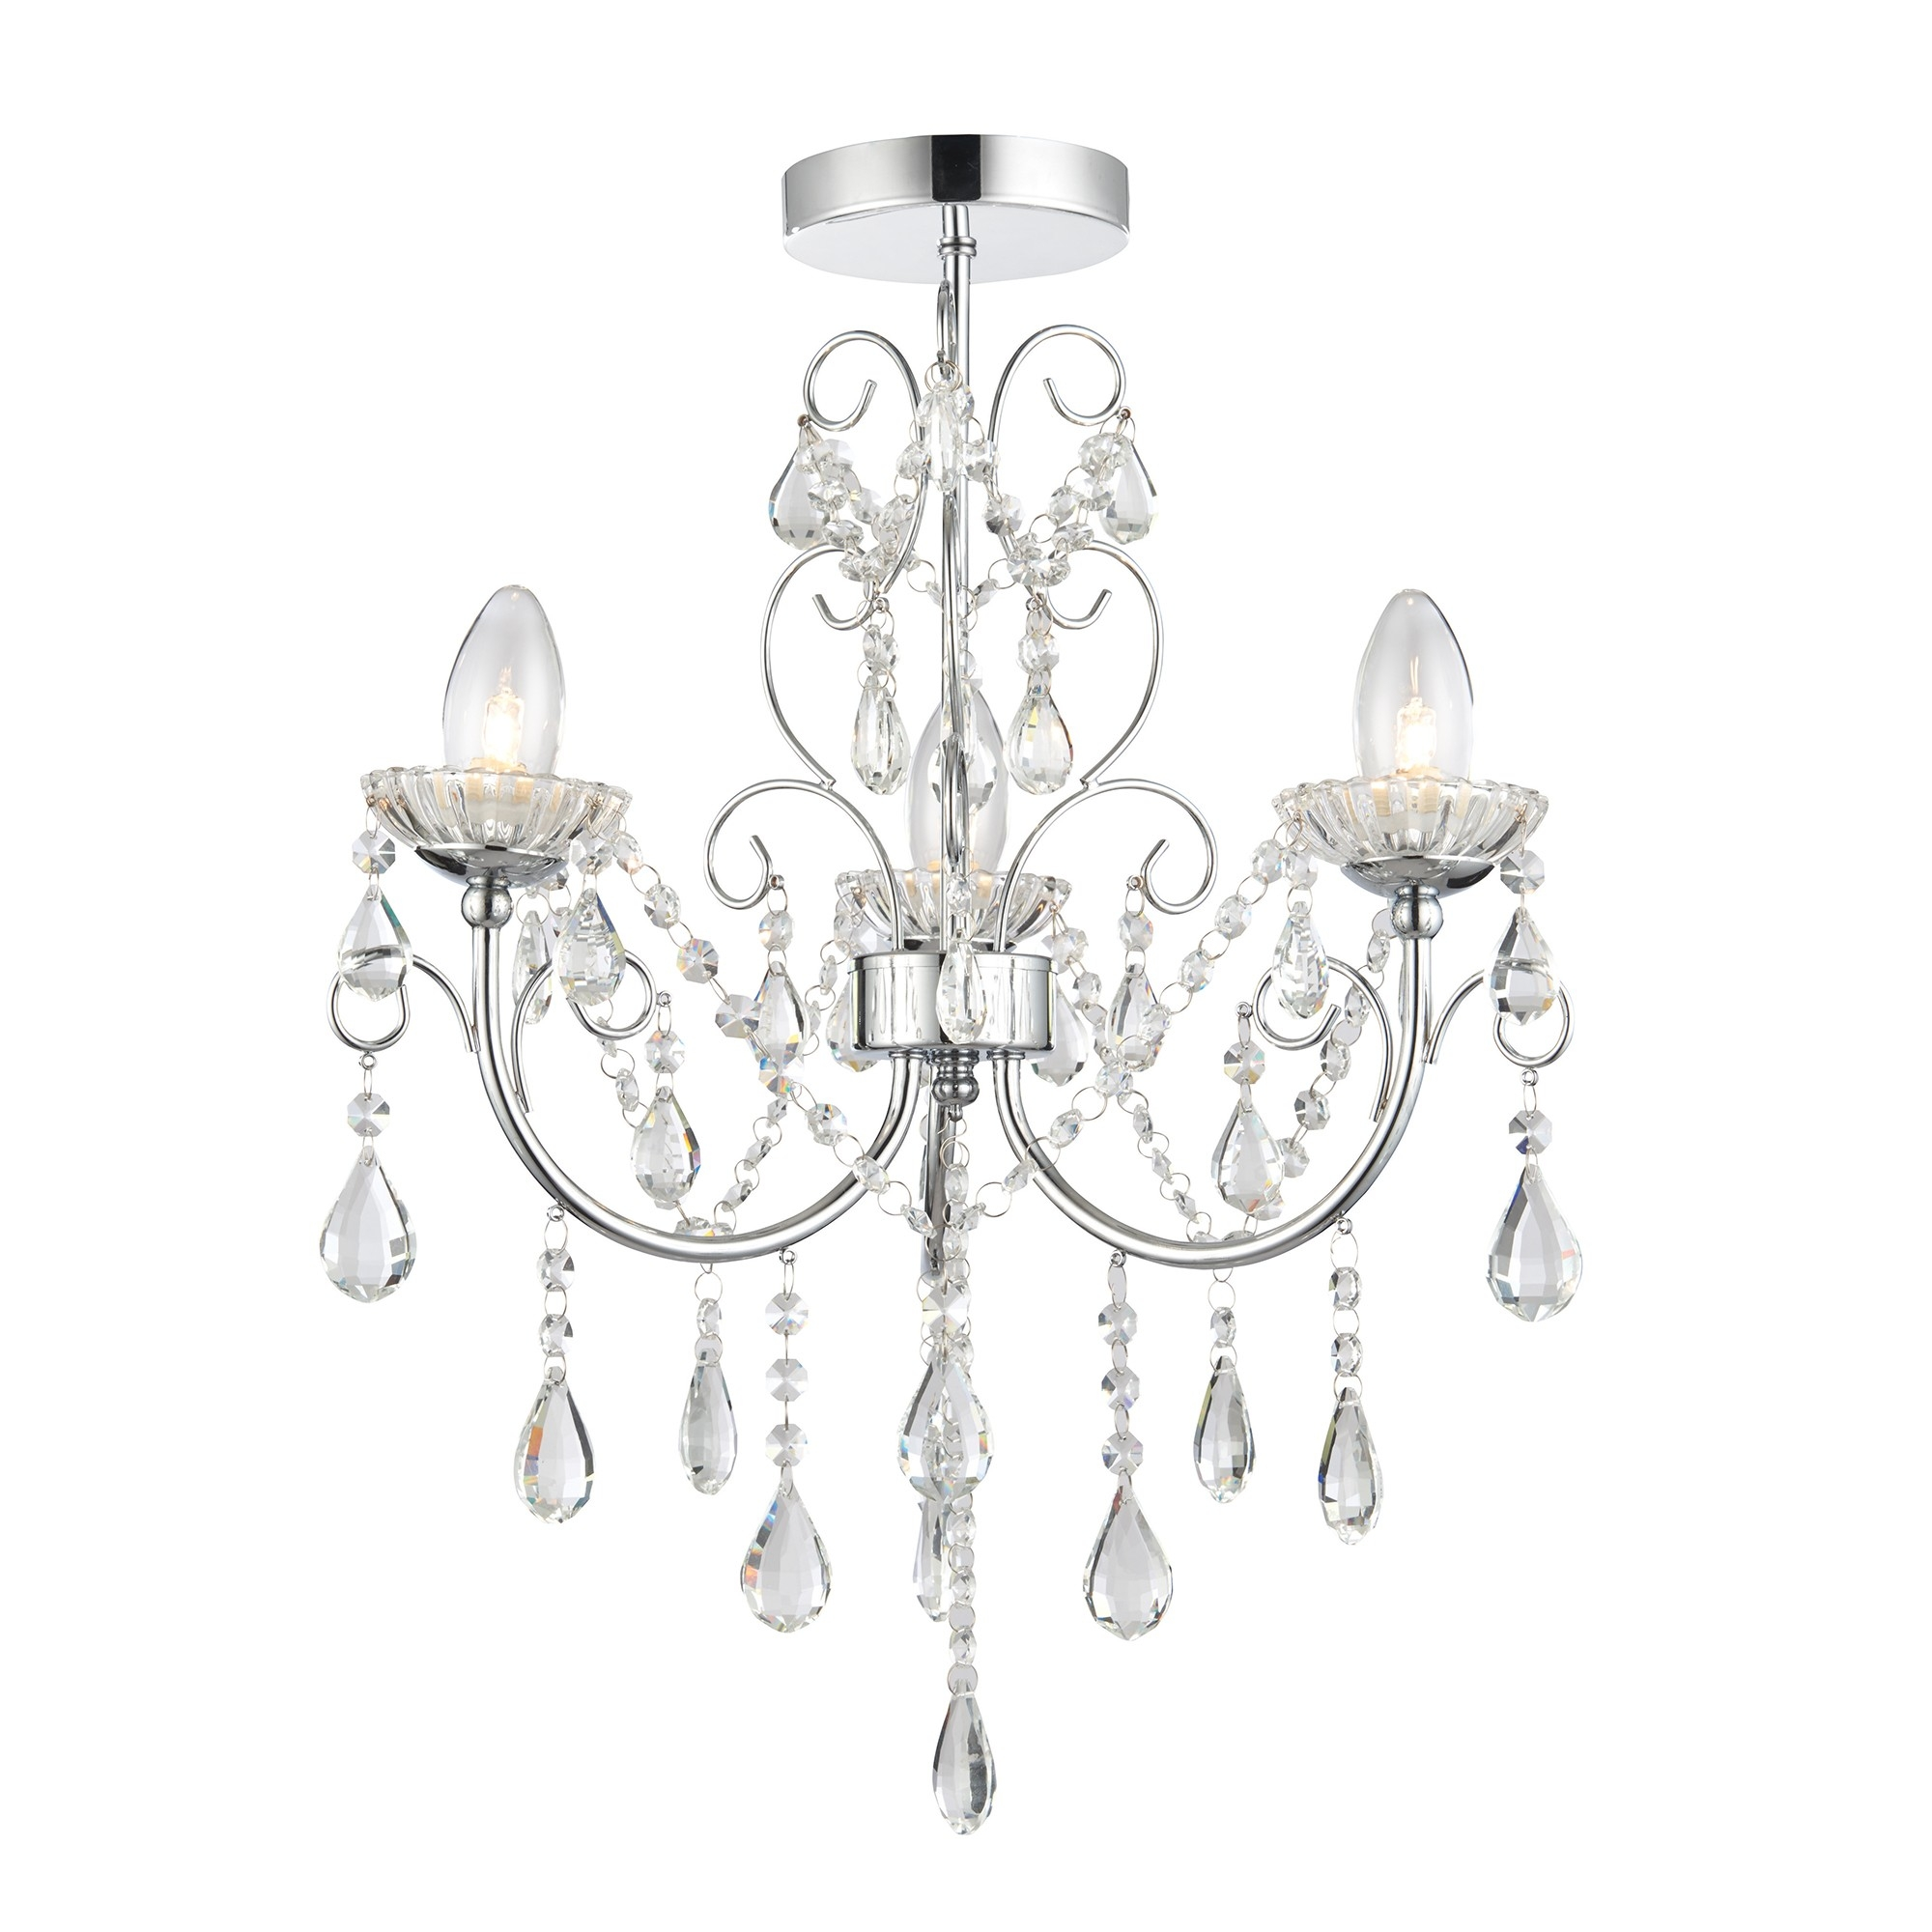 Tabitha Semi Flush Bathroom 3 Light Chandelier With Crystal Glass With Regard To Endon Lighting Chandeliers (View 21 of 25)